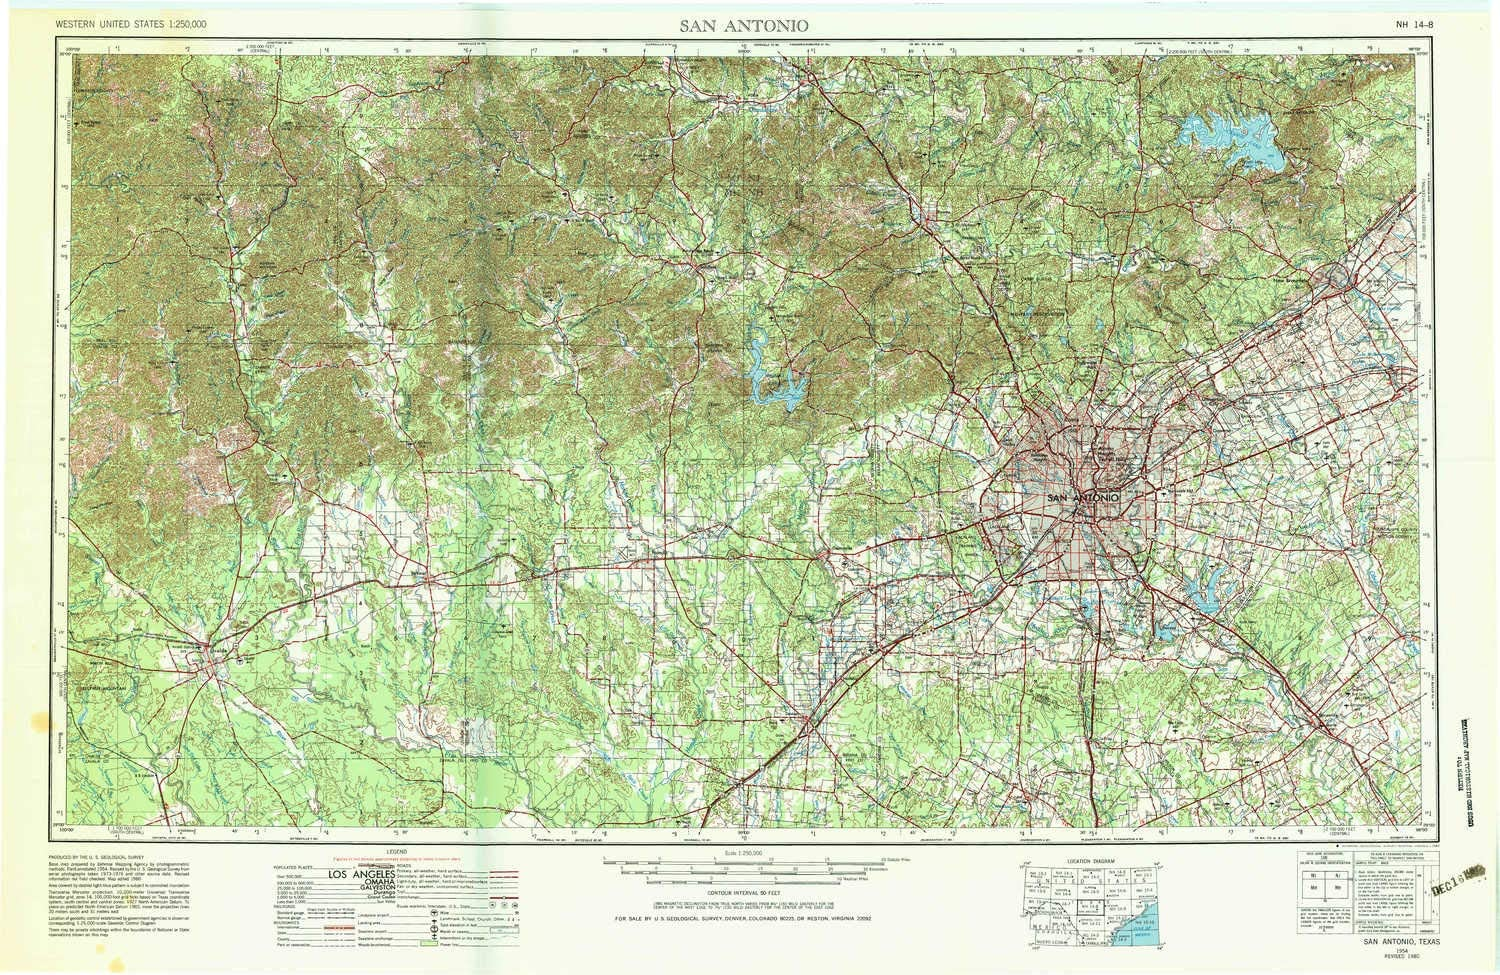 amazon com yellowmaps san antonio tx topo map 1 250000 scale 1 x 2 degree historical 1954 updated 1983 22 1 x 34 in paper sports outdoors yellowmaps san antonio tx topo map 1 250000 scale 1 x 2 degree historical 1954 updated 1983 22 1 x 34 in